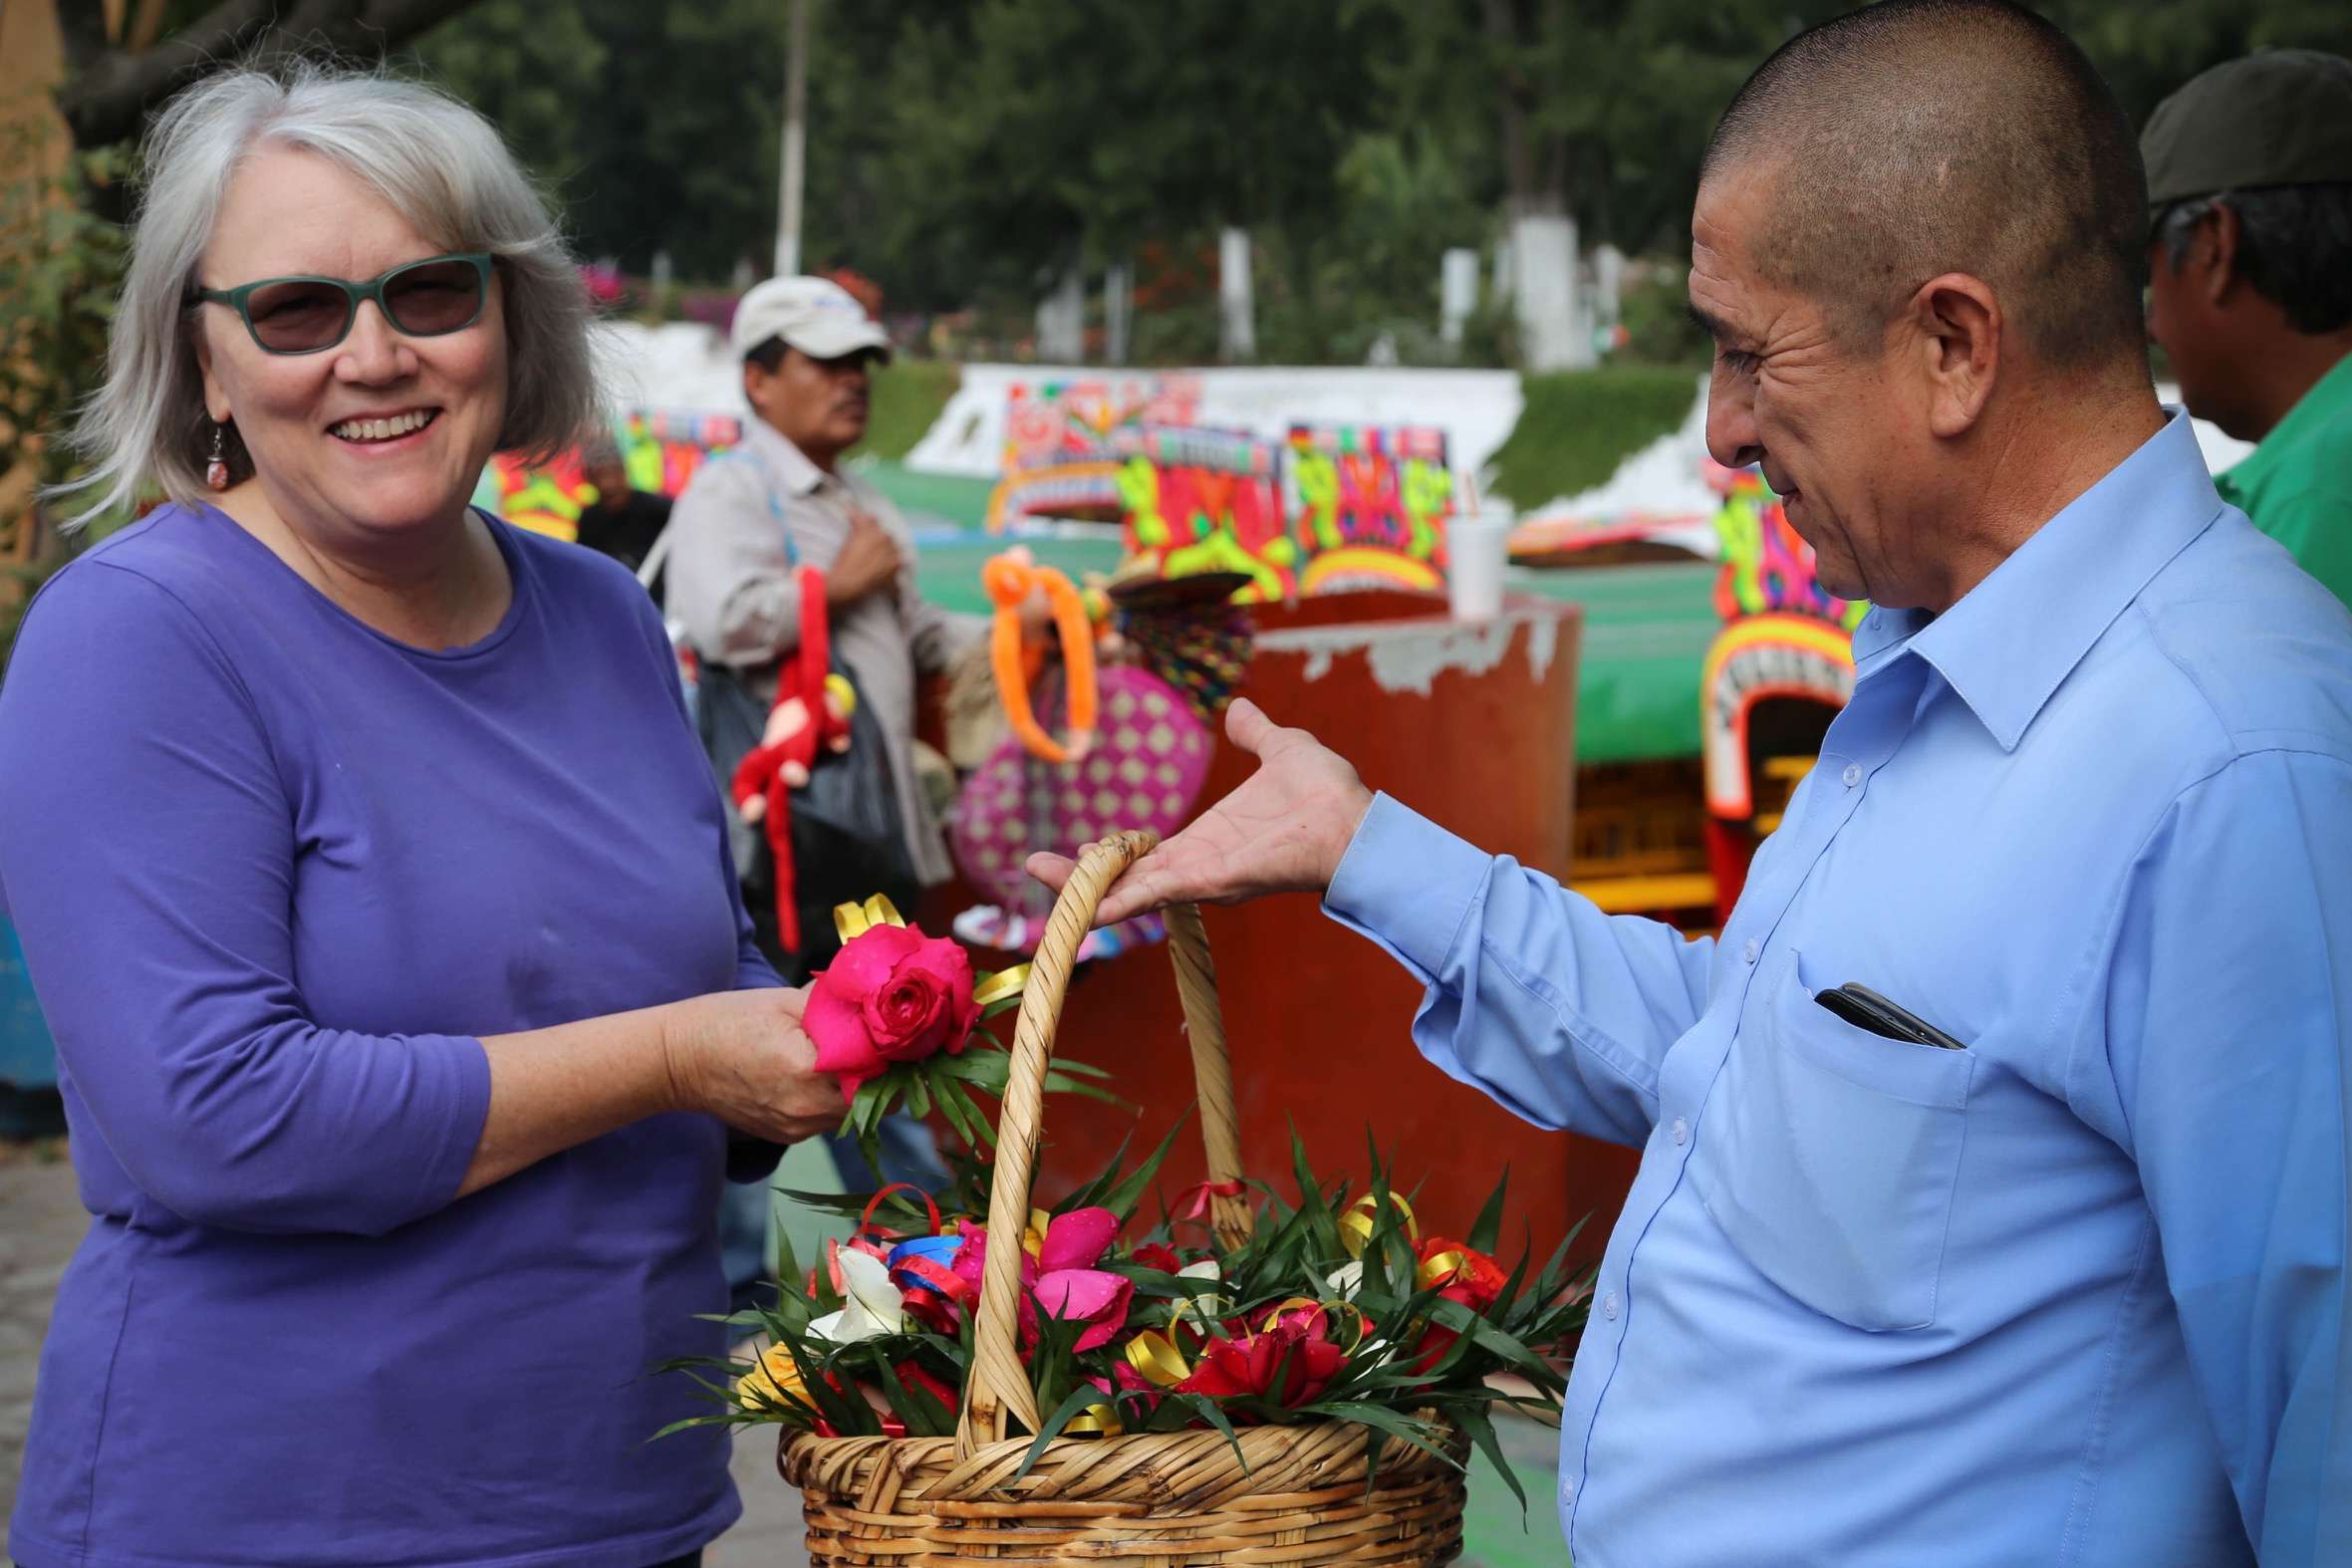 A vendor offers flowers to a visitor before she boards her trajinera.